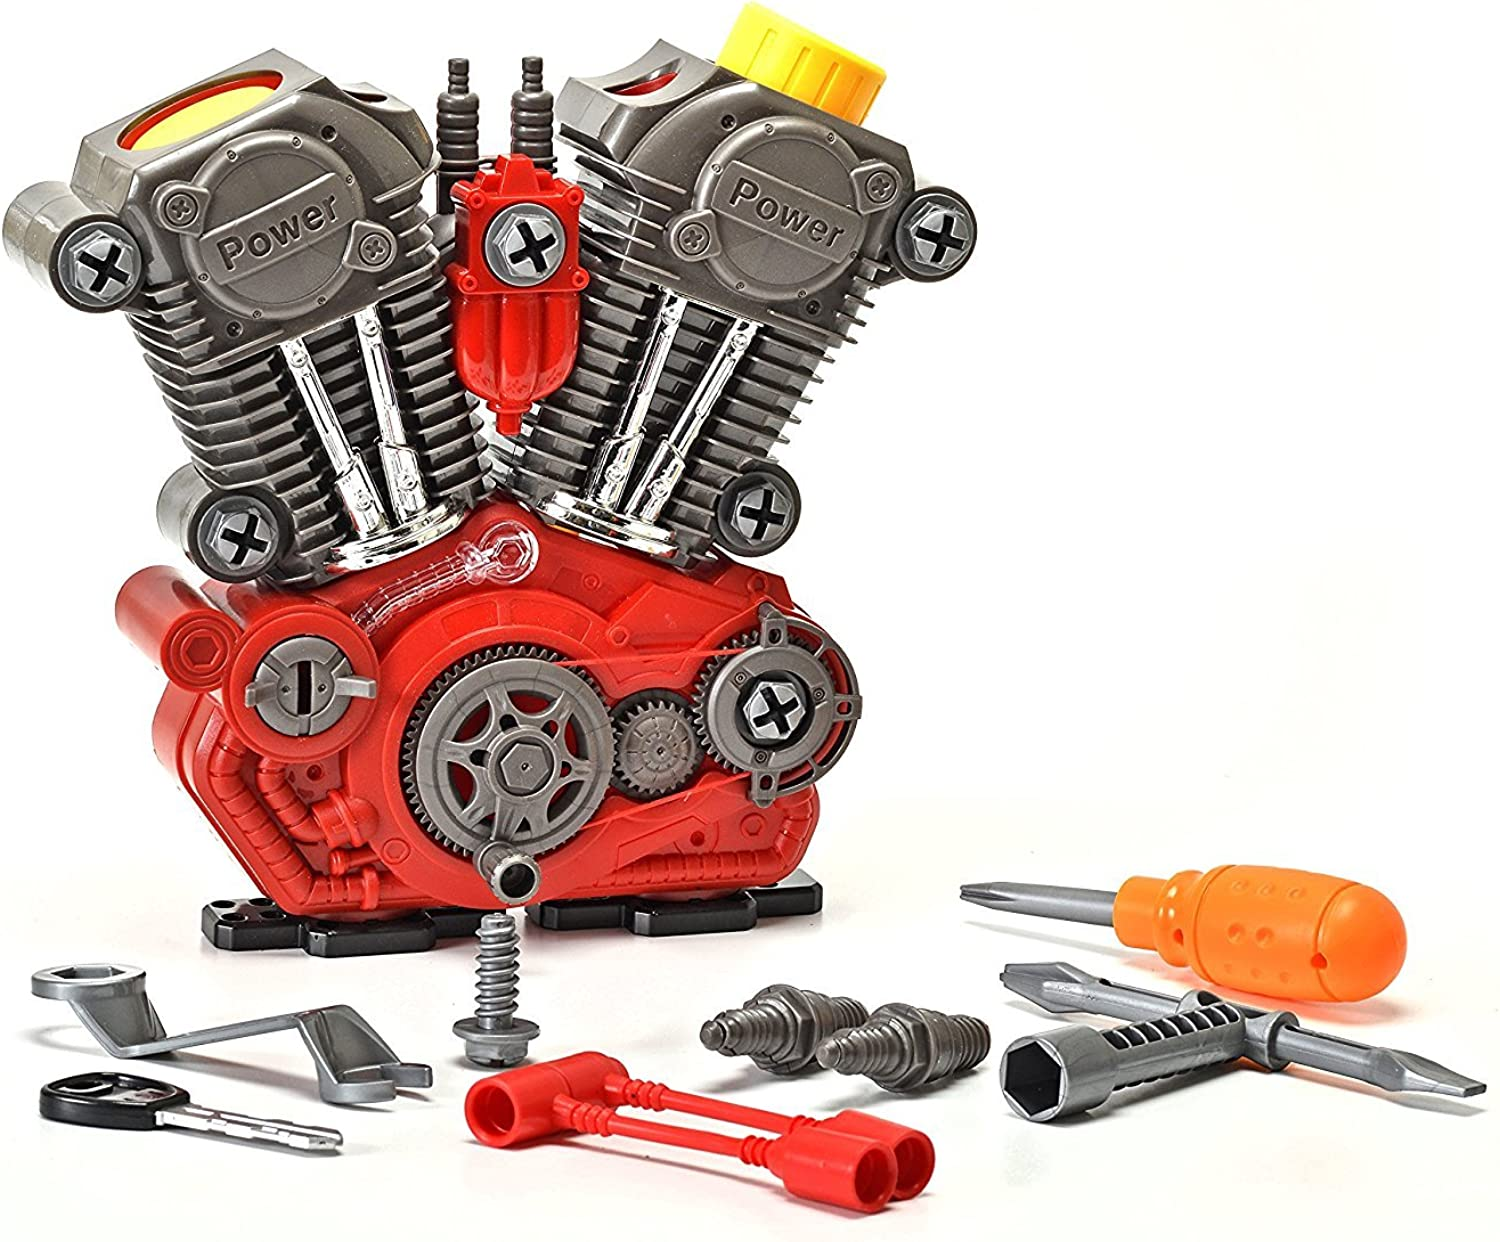 King of Toys Educational BuildYourOwn Engine Over 25 Piece Play Set Kit with Light's & Sounds (Build & ReBuild) Special Kid's Safe Storage Bag to Predect from Loosing Pieces Included.